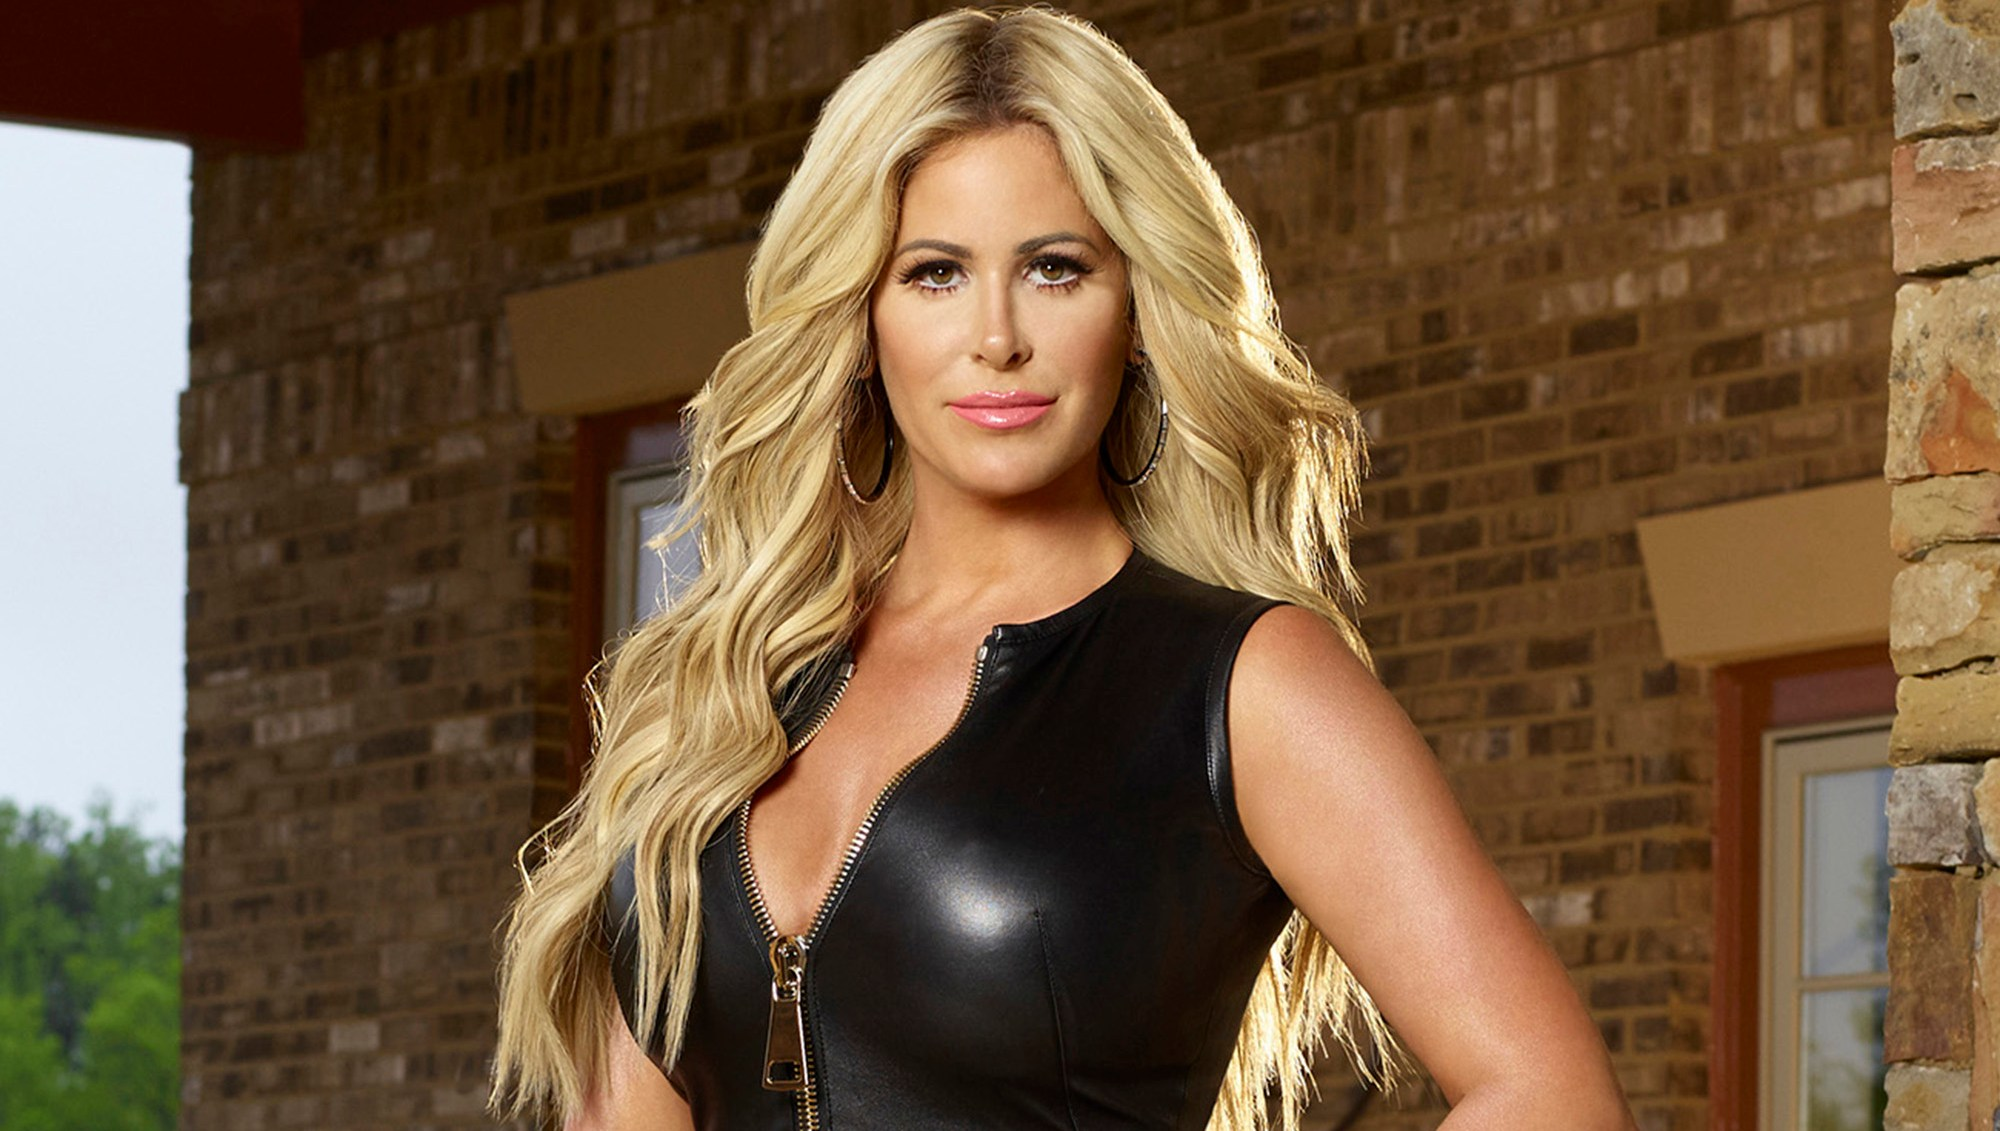 Kim Zolciak-Biermann on Don't Be Tardy